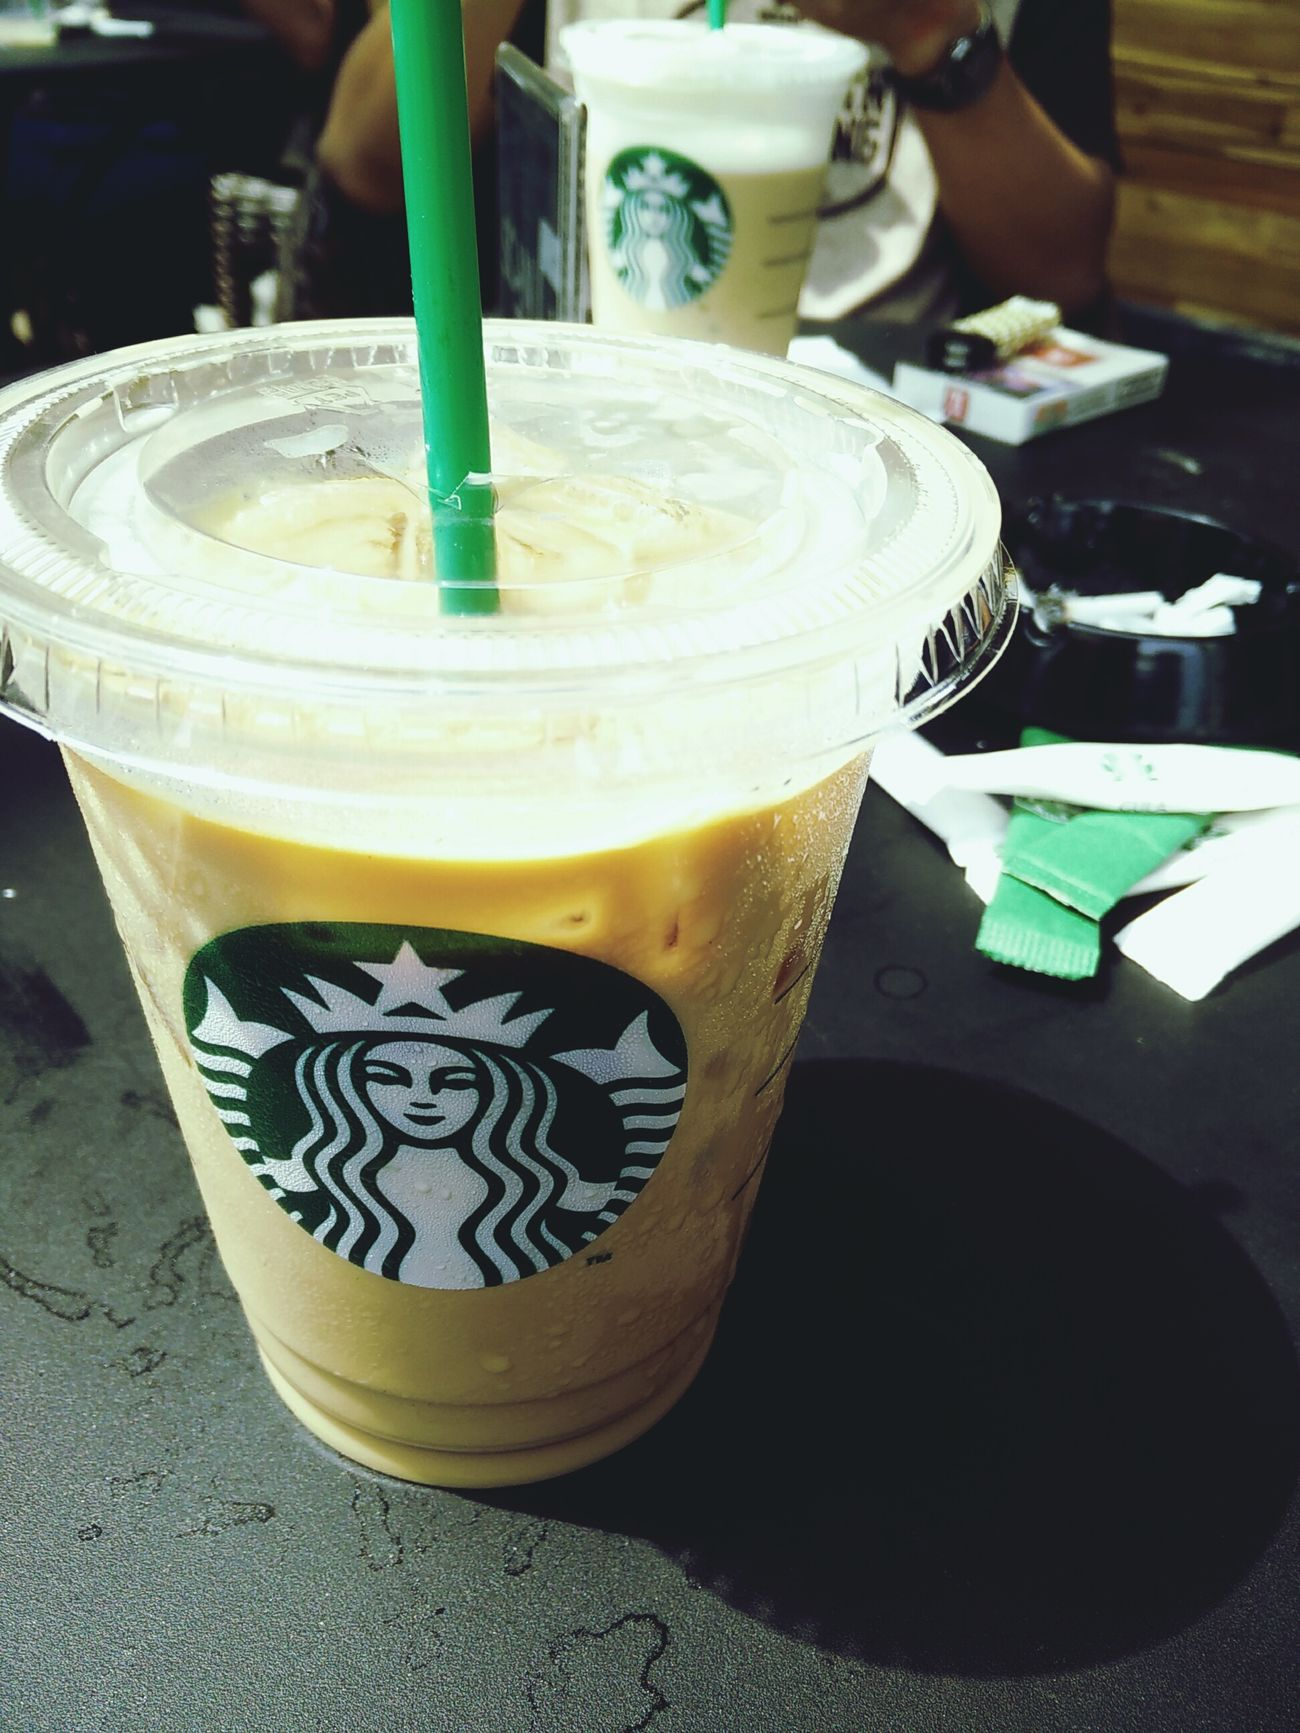 Hanging Out Starbucks Centerpoint Coffe Latte VanillaLatte